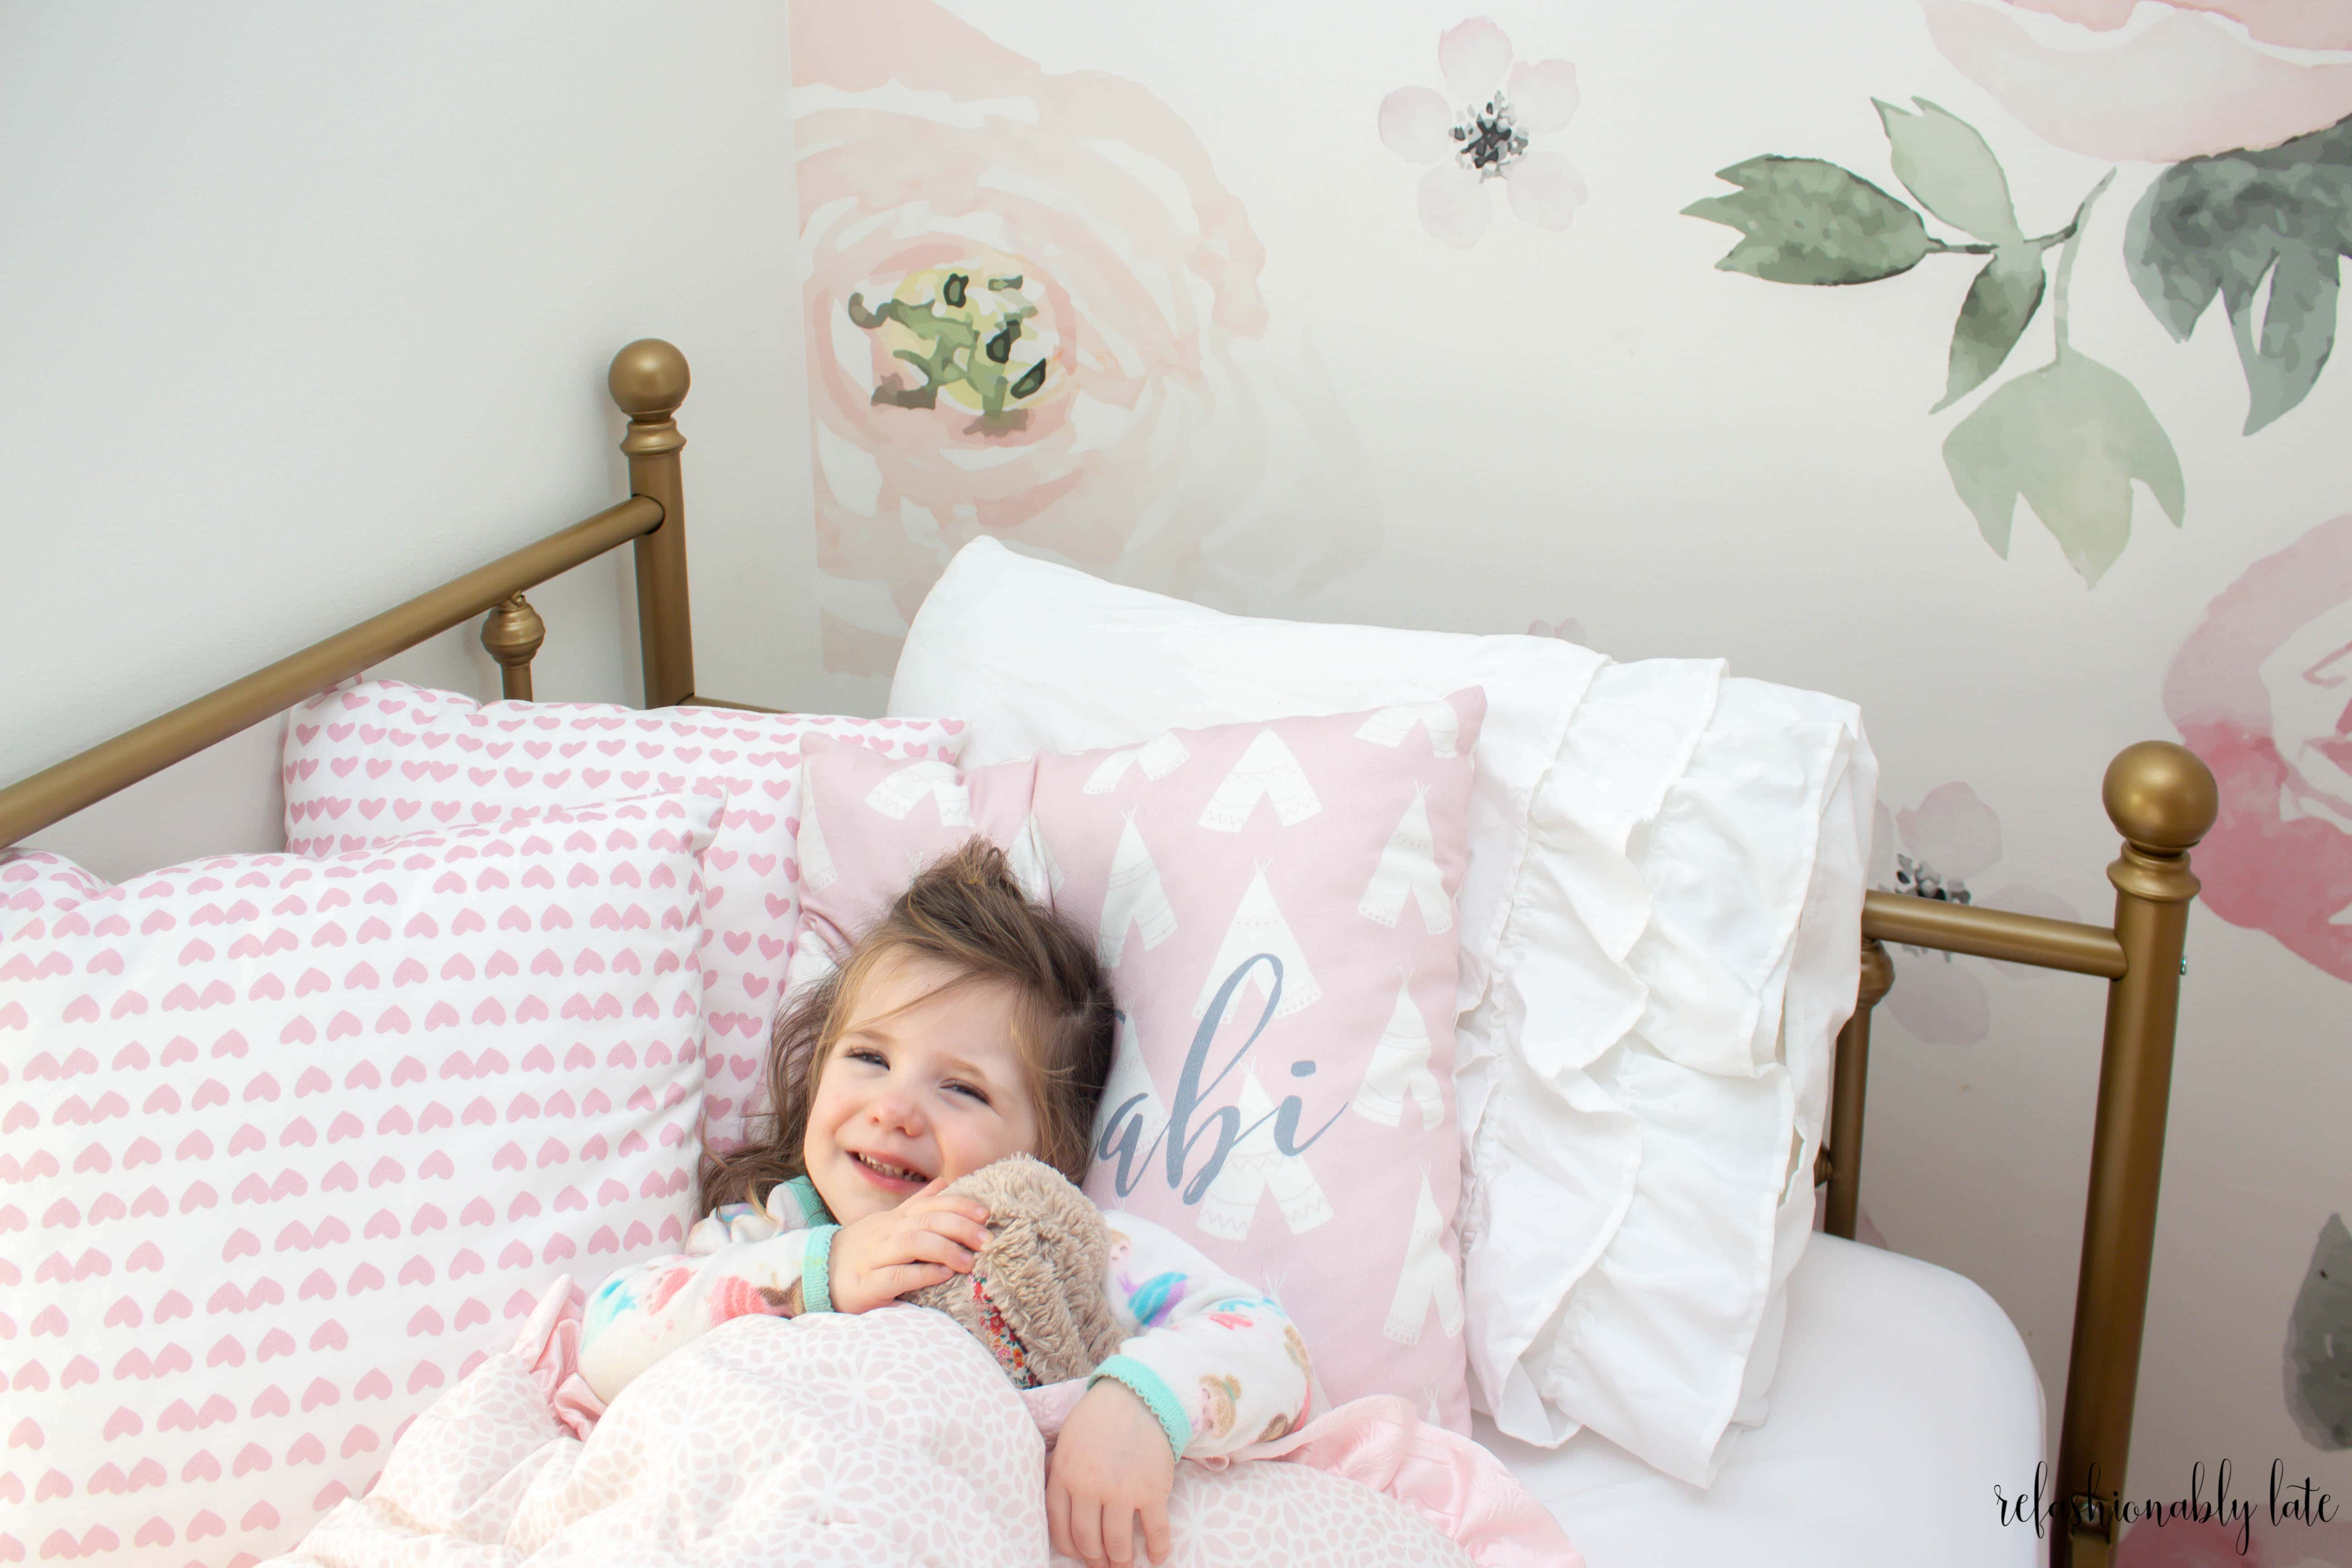 gold daybed with pillows and little girl snuggling a bunny